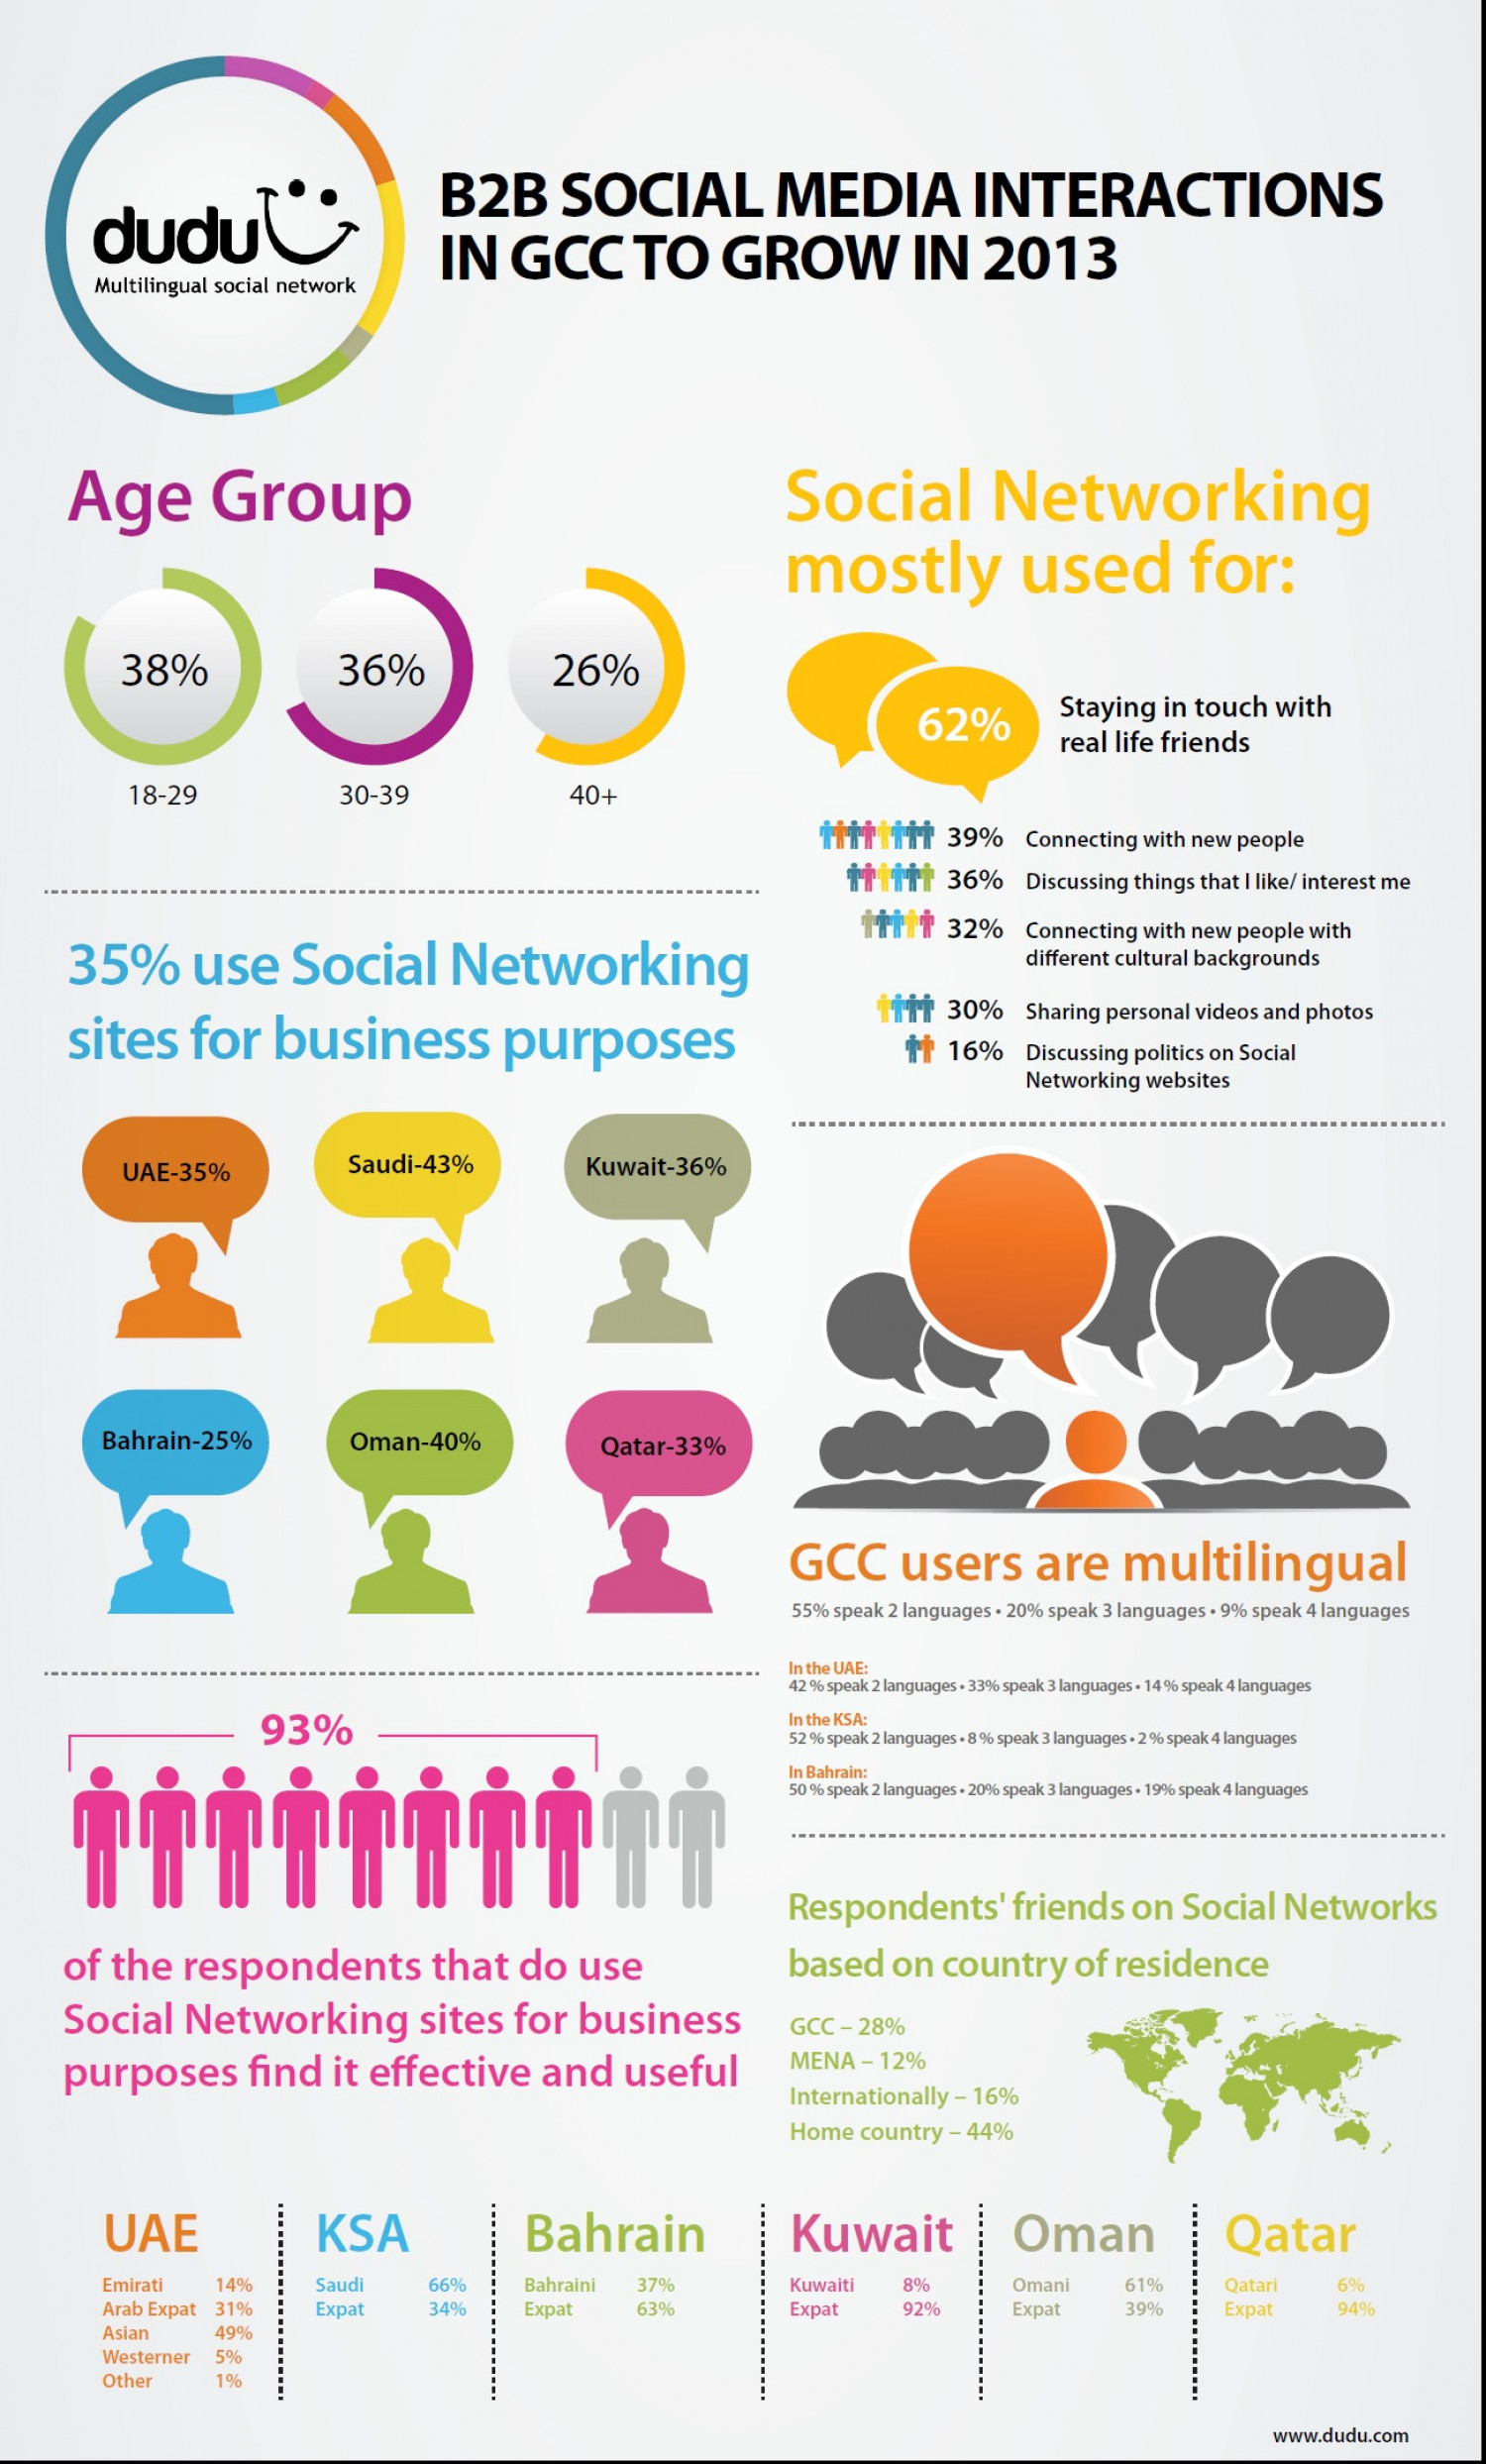 B2B Social Media Interactions in the GCC to Grow in 2013 Infographic